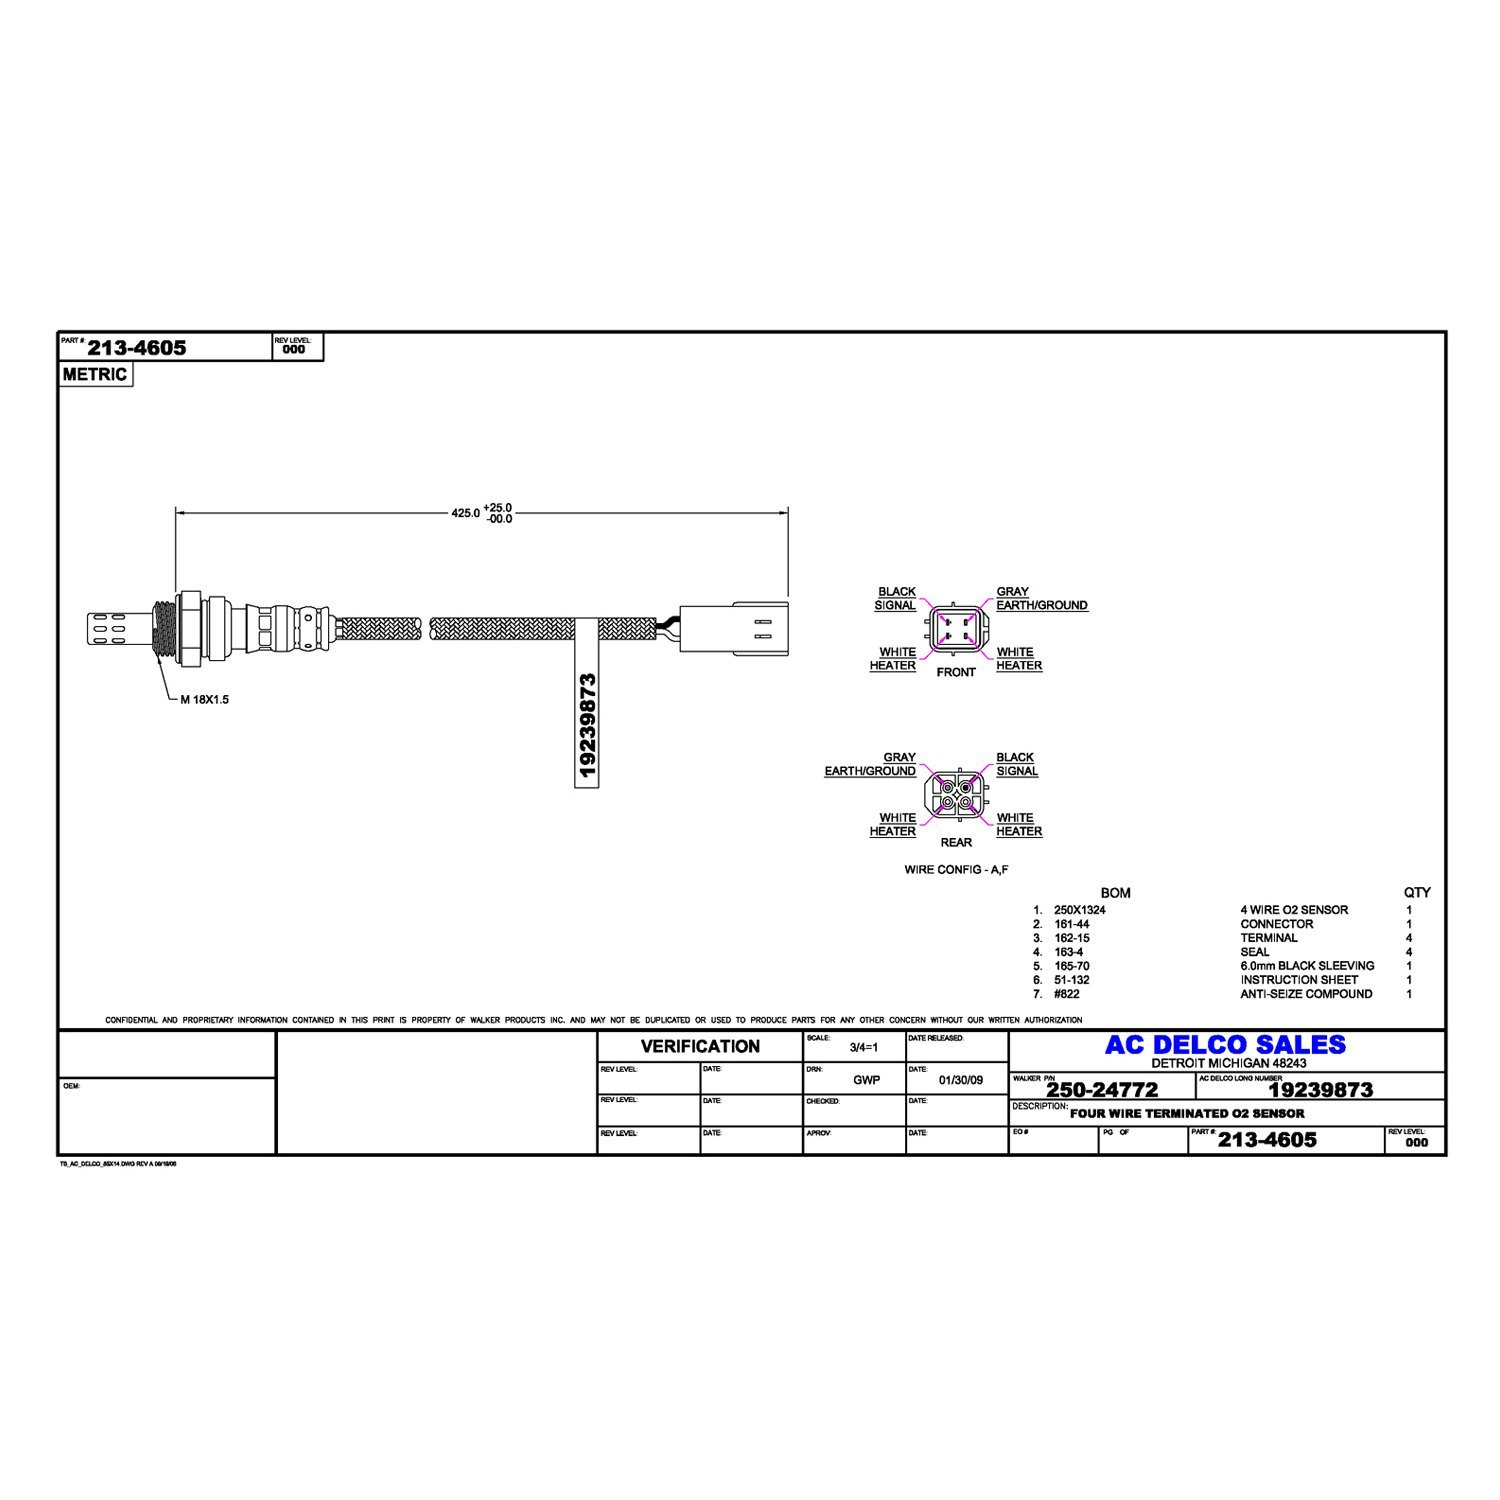 Mk 1421 O2 Sensor Wiring Diagram Together With 4 Wire O2 Sensor Wiring Diagram Download Diagram